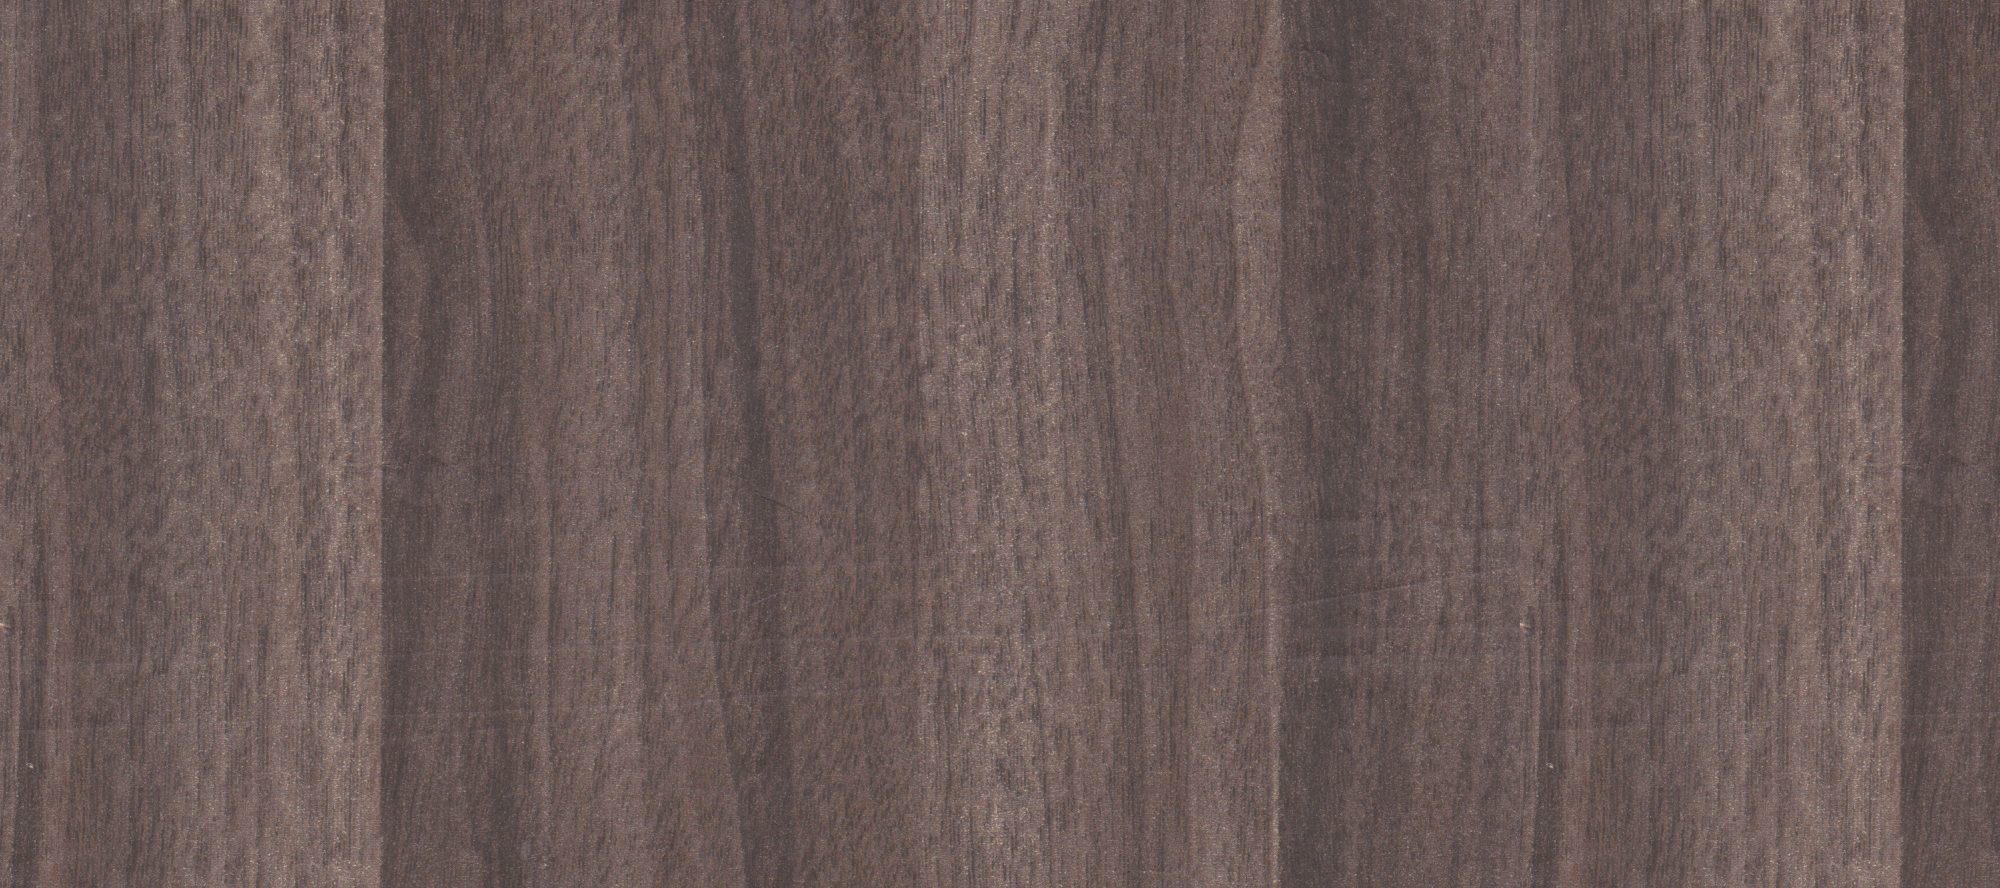 2718 Dark Walnut Laminate